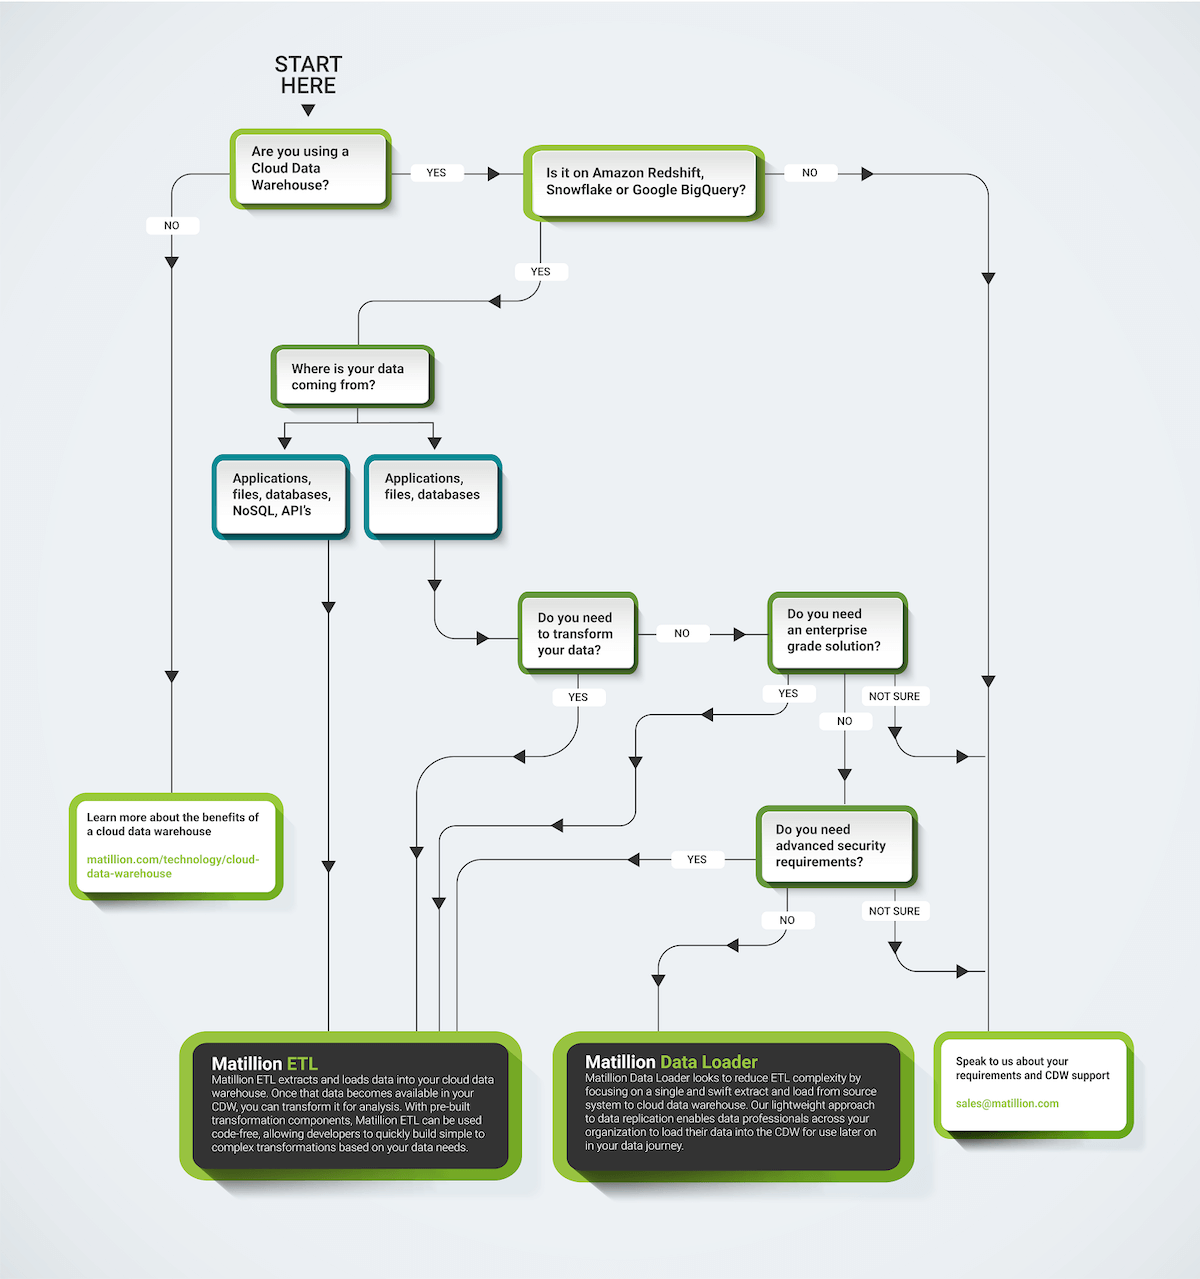 Matillion Data Loader and Matillion ETL: Here is a flow chart to help you decide which to use